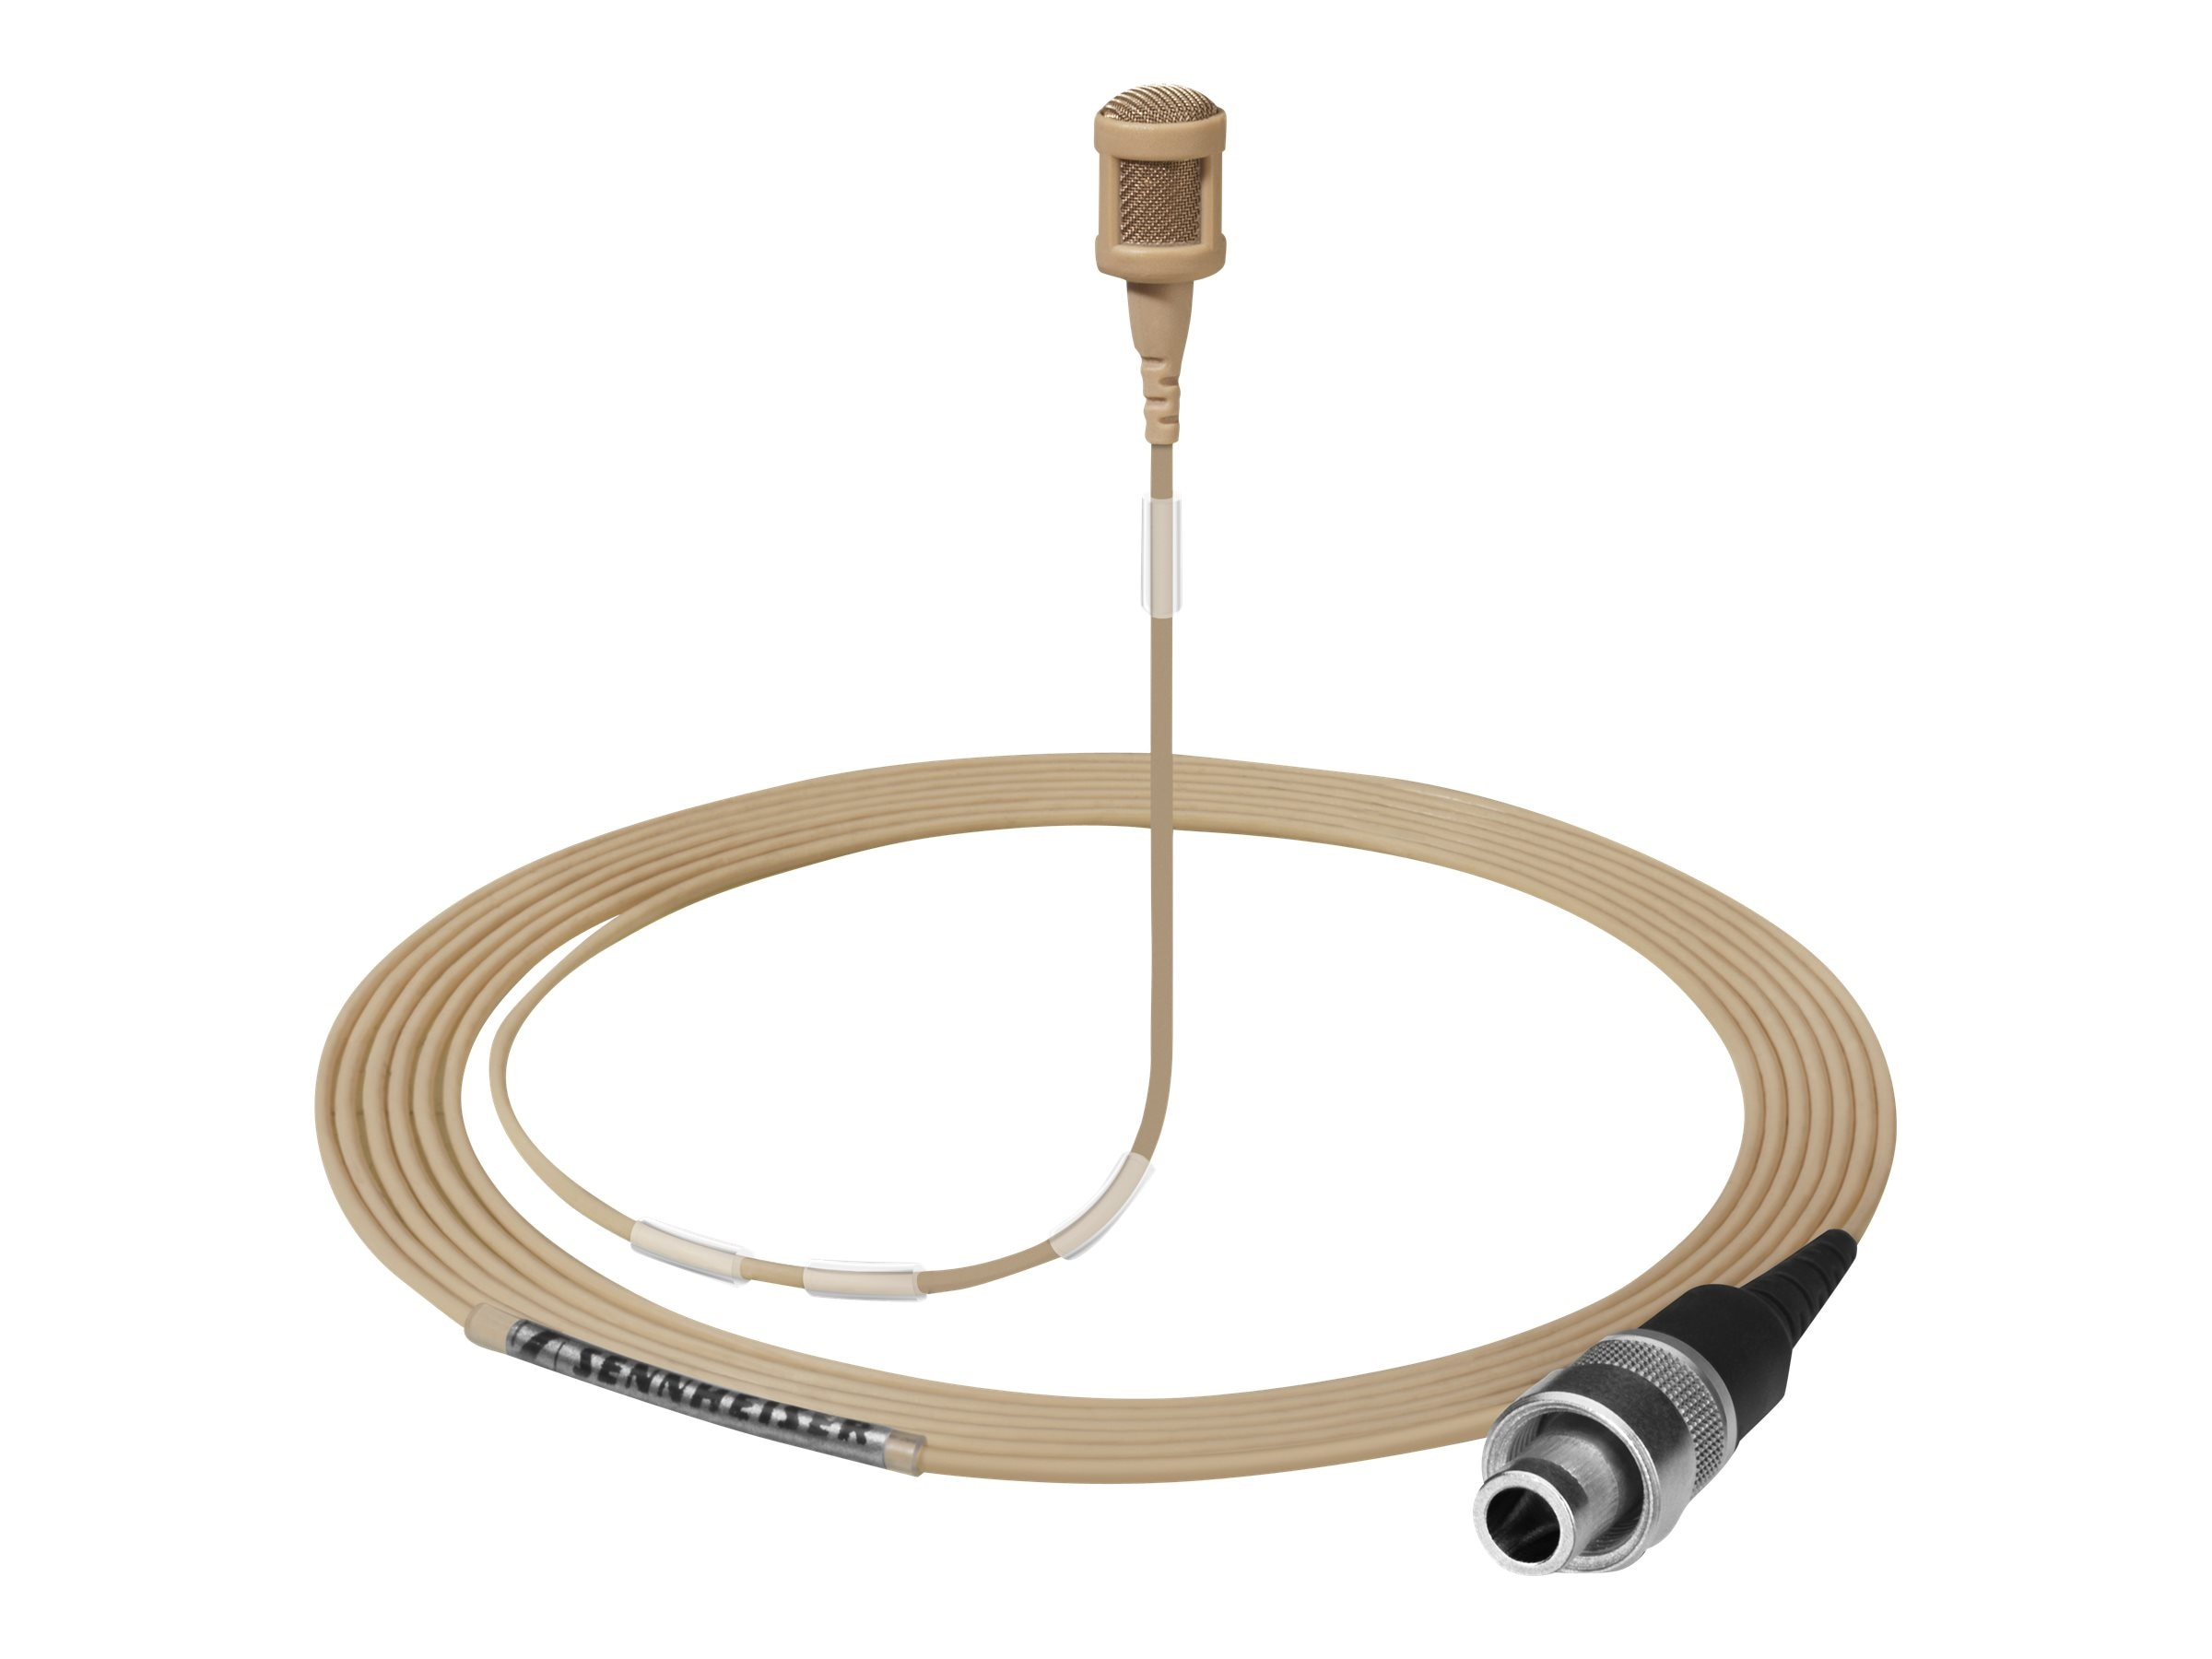 Sennheiser MKE 1-5-M Sound Pro Clip-On Microphone Open-ended Cable, 3m, Light Beige, Paintable, 502880